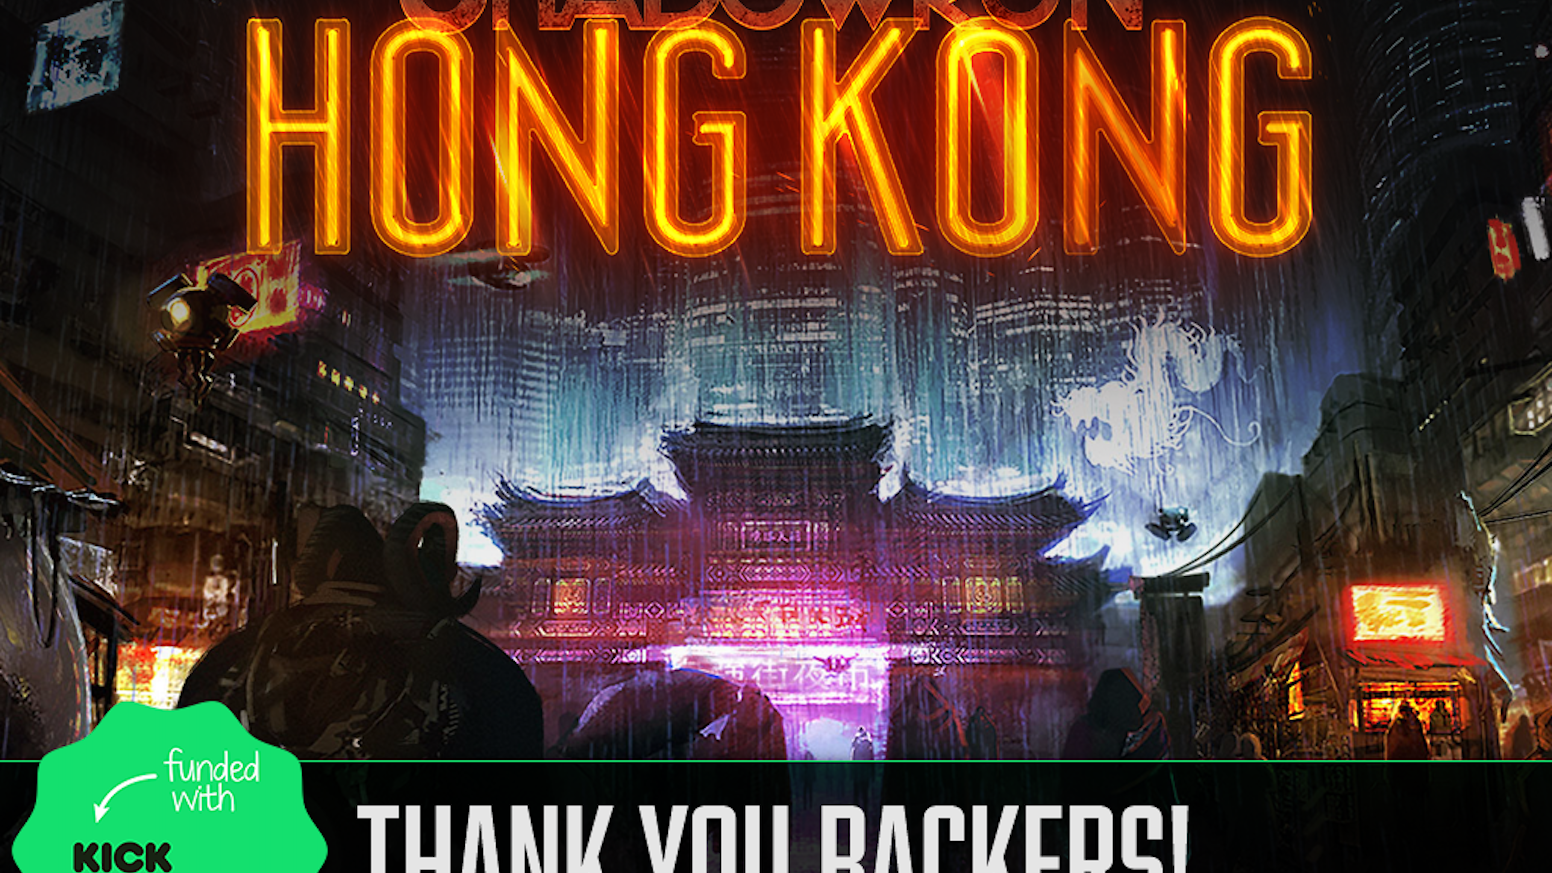 A Shadowrun cyberpunk cRPG set in 2056's Magically Awakened Hong Kong by the developers of Shadowrun Returns & Dragonfall.